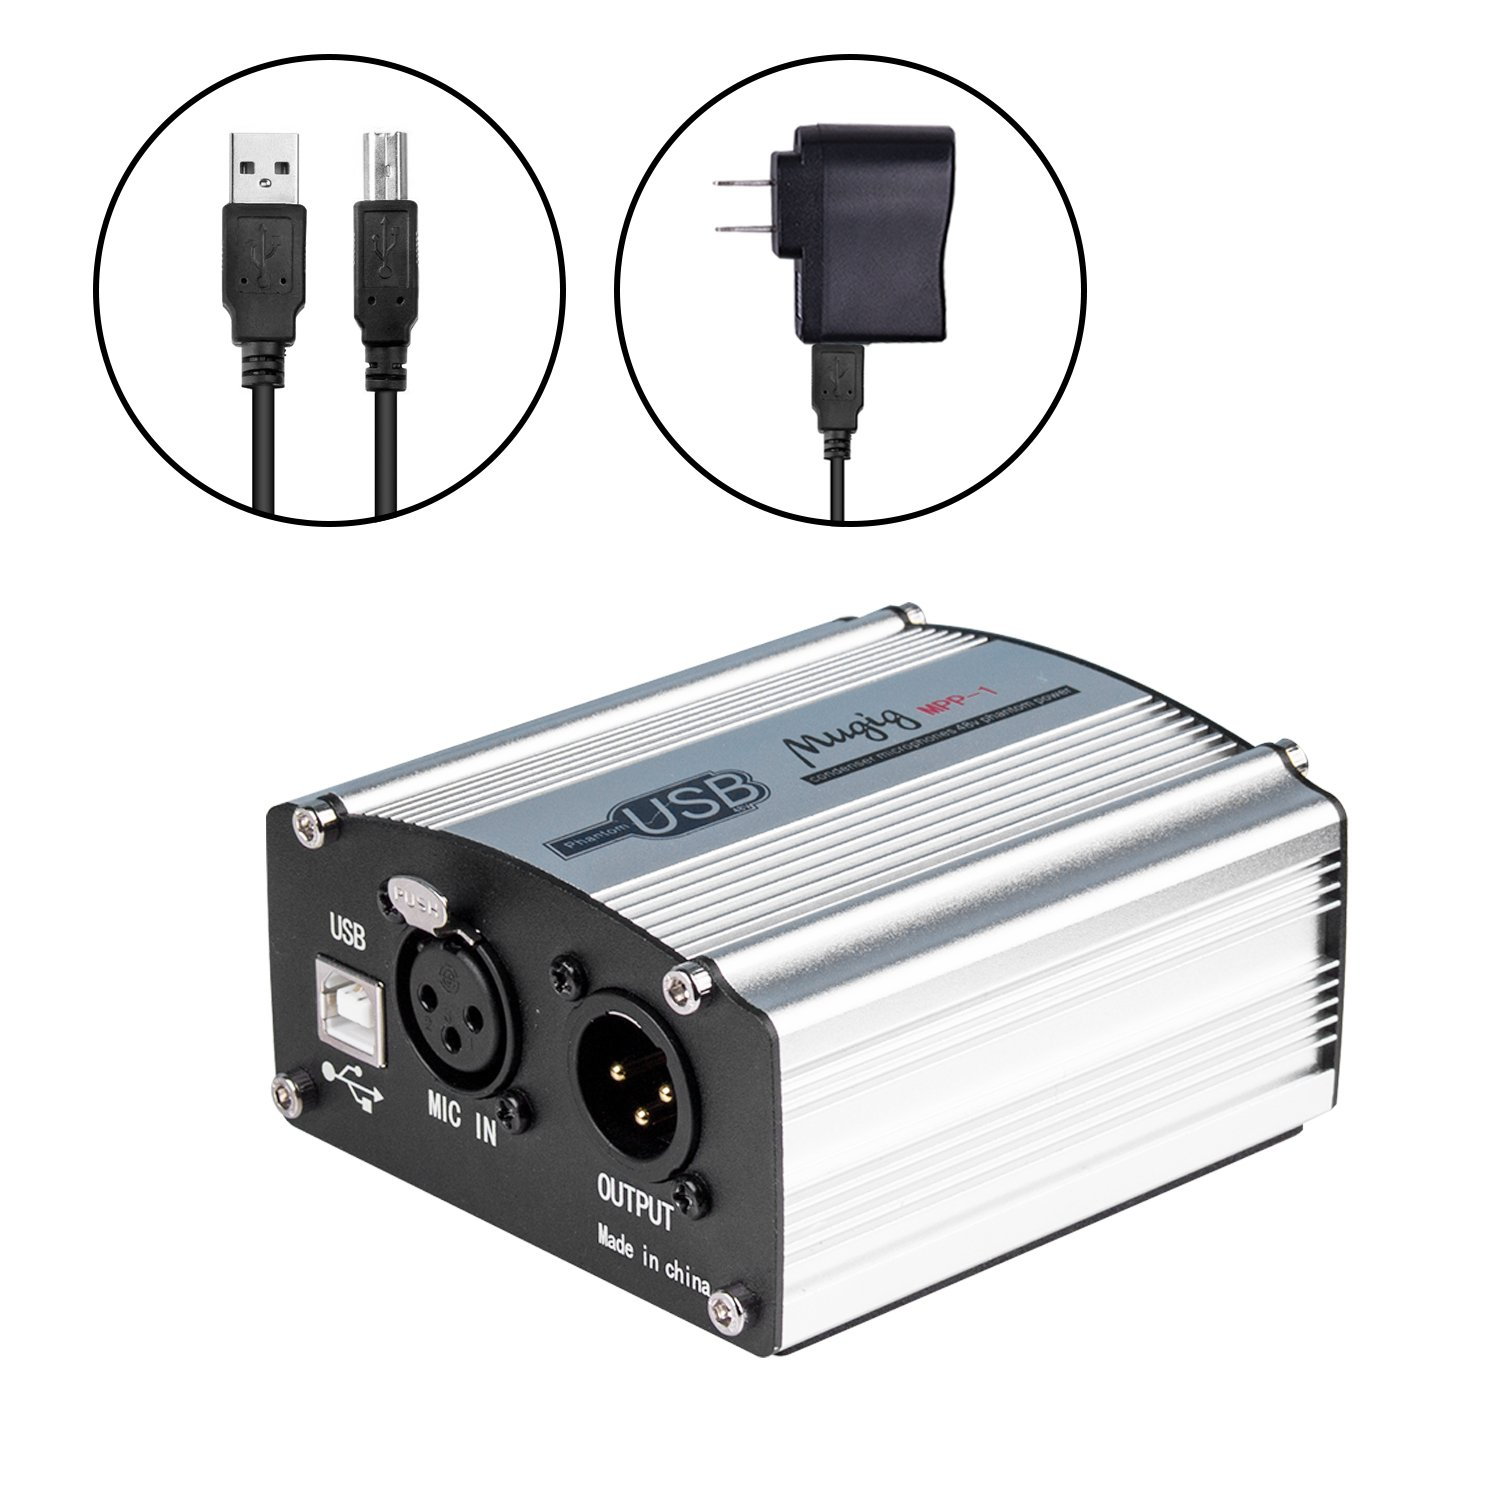 Mugig Phantom Power Supply with USB cable for Condenser Microphone, 48V Adaptable Professional Power Supply for Studio Music Recording mpp-1